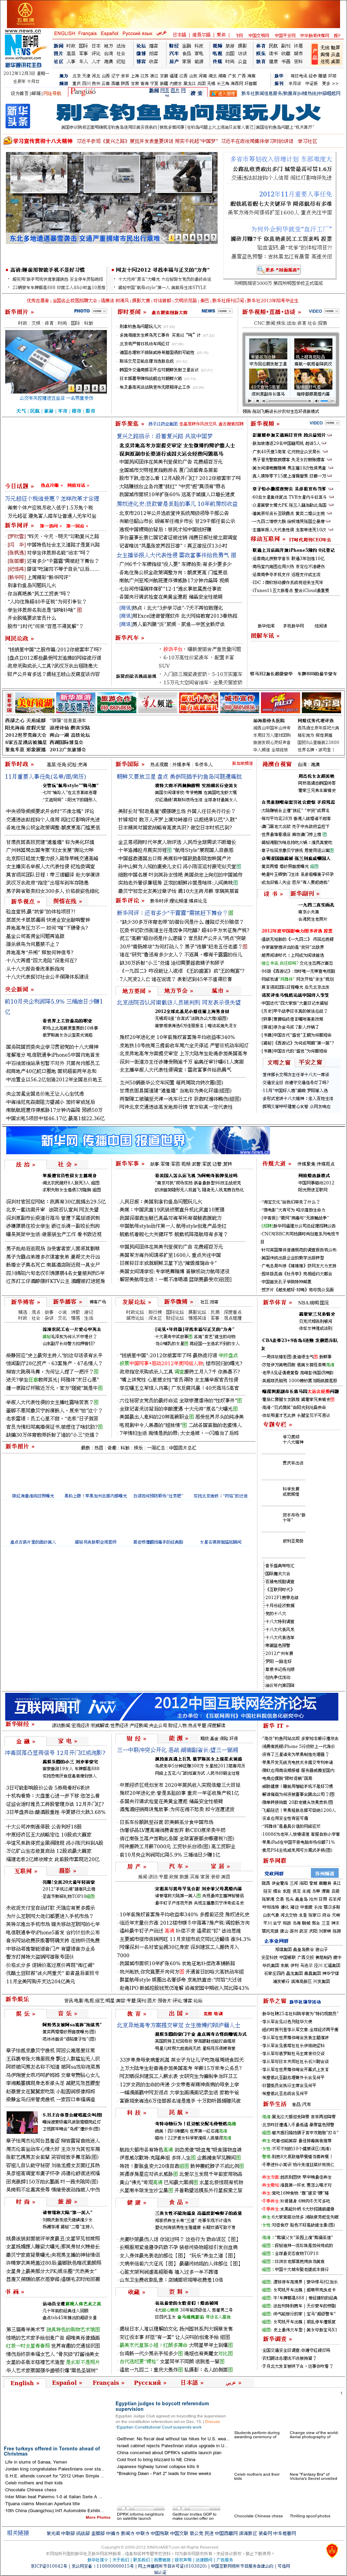 Xinhua at Monday Dec. 3, 2012, 4:35 a.m. UTC